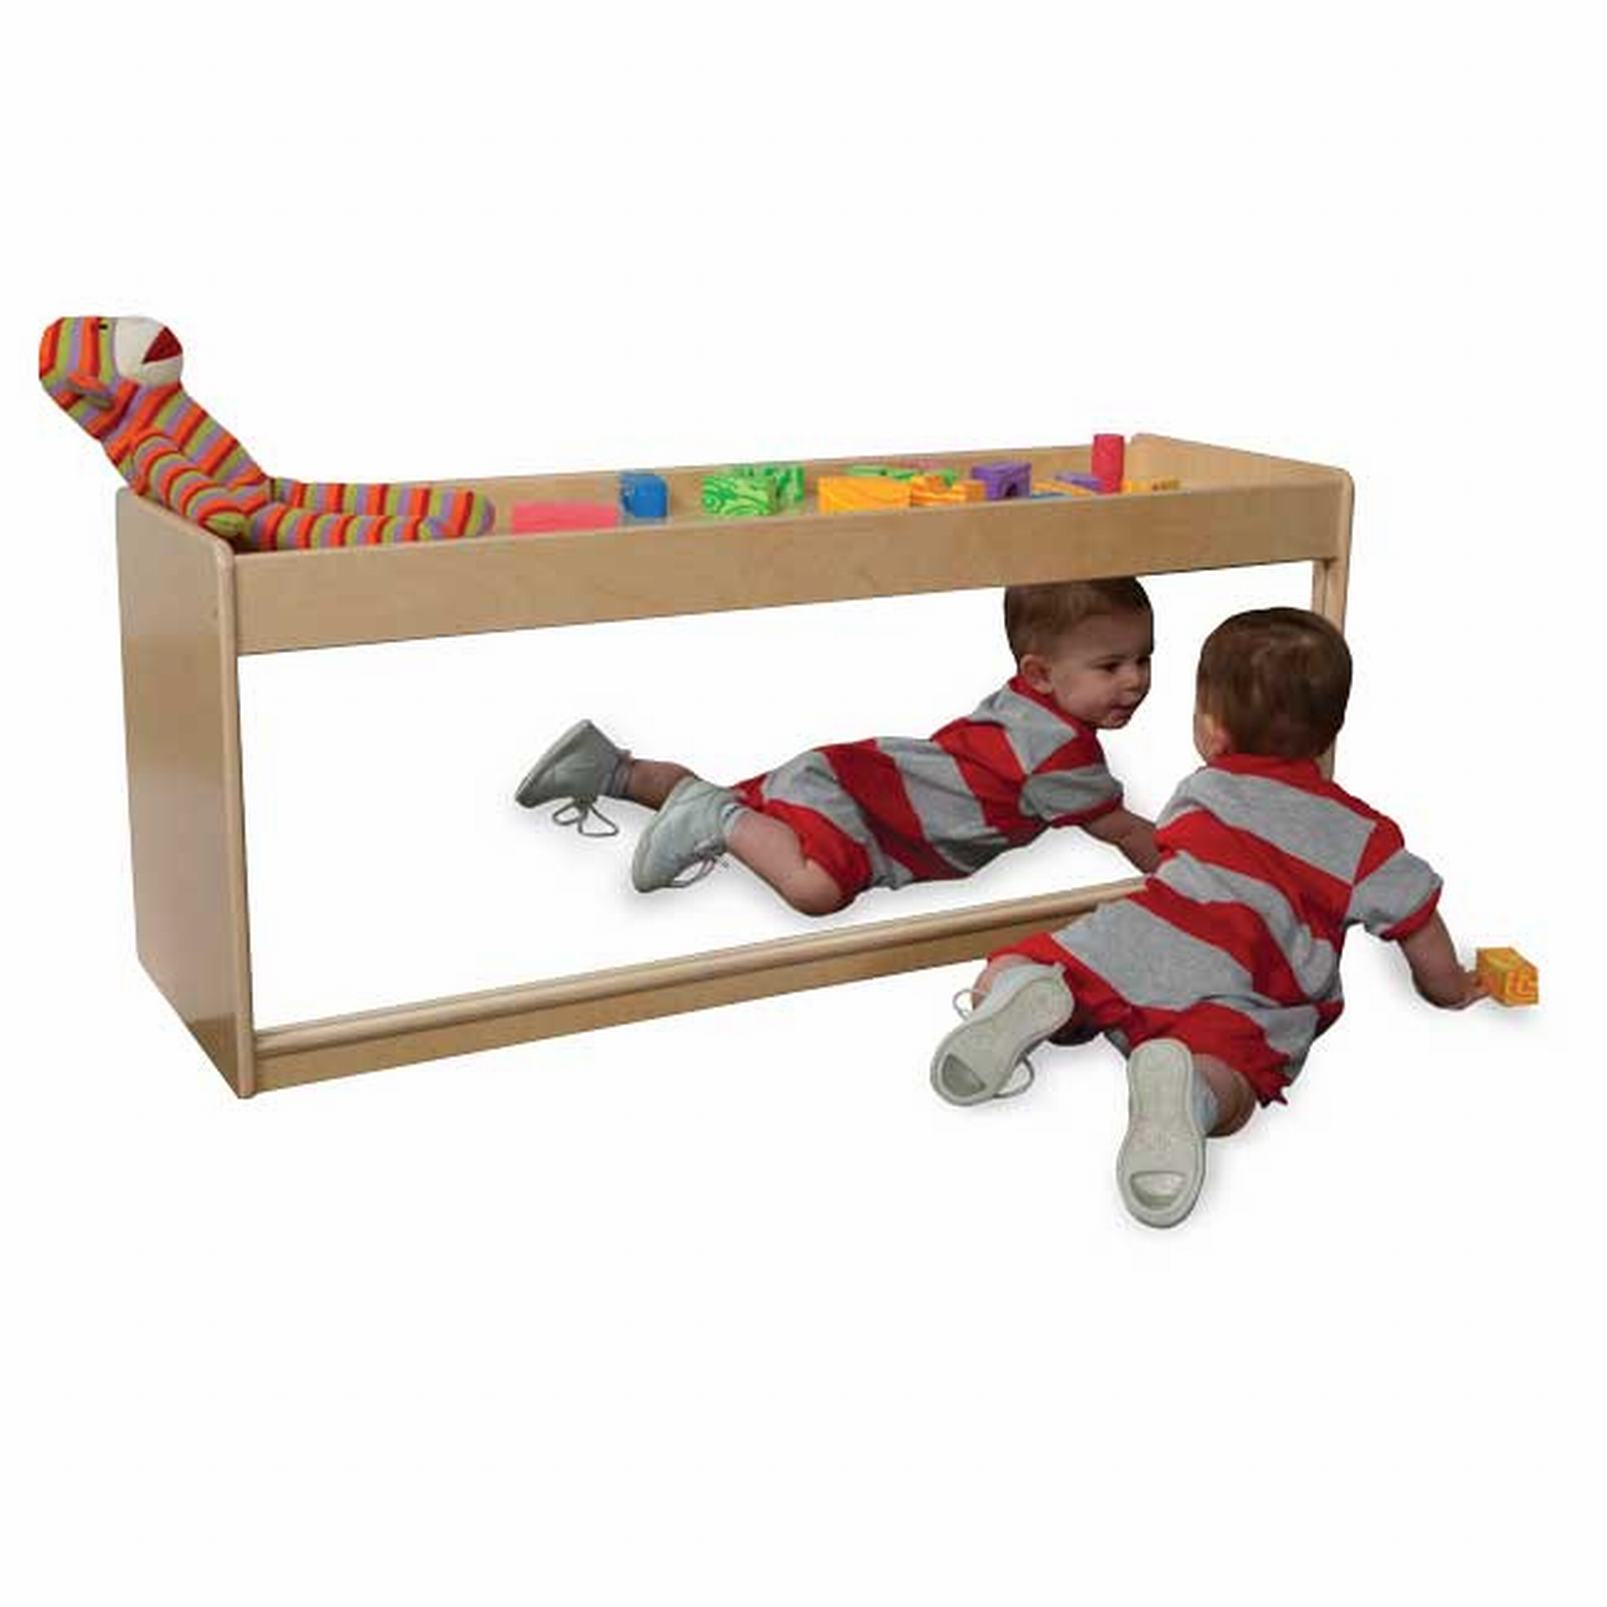 Infant Pull-Up Storage